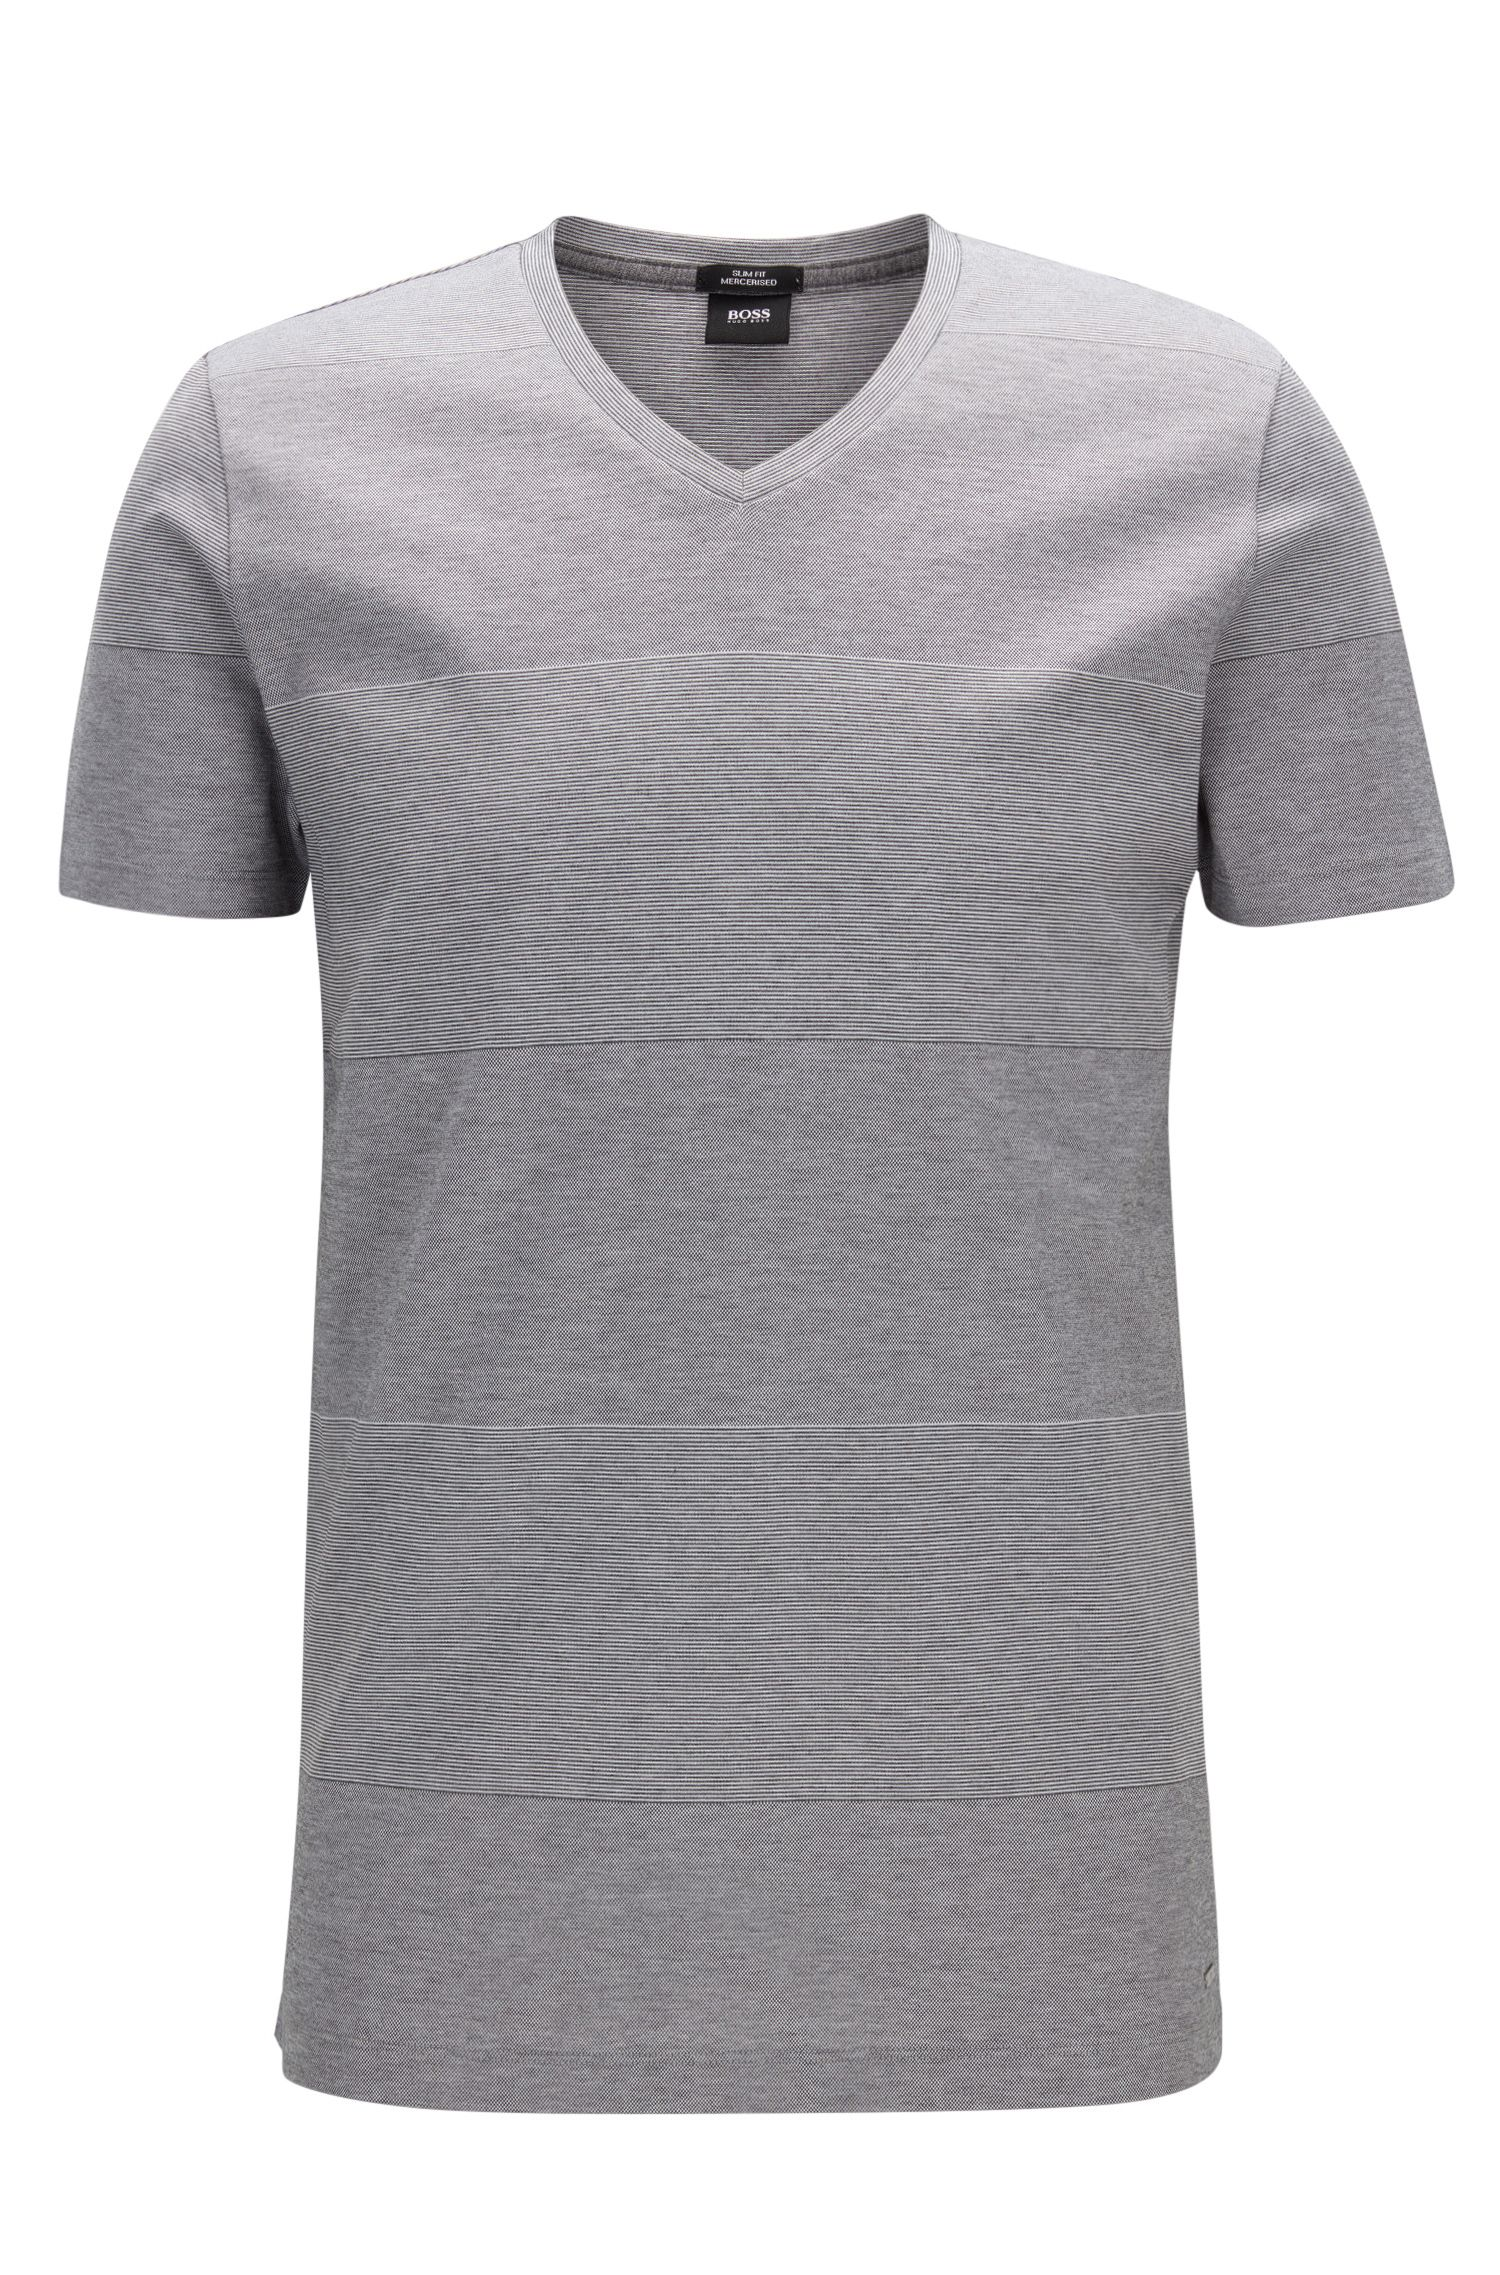 T-shirt Slim Fit à larges rayures en coton mercerisé